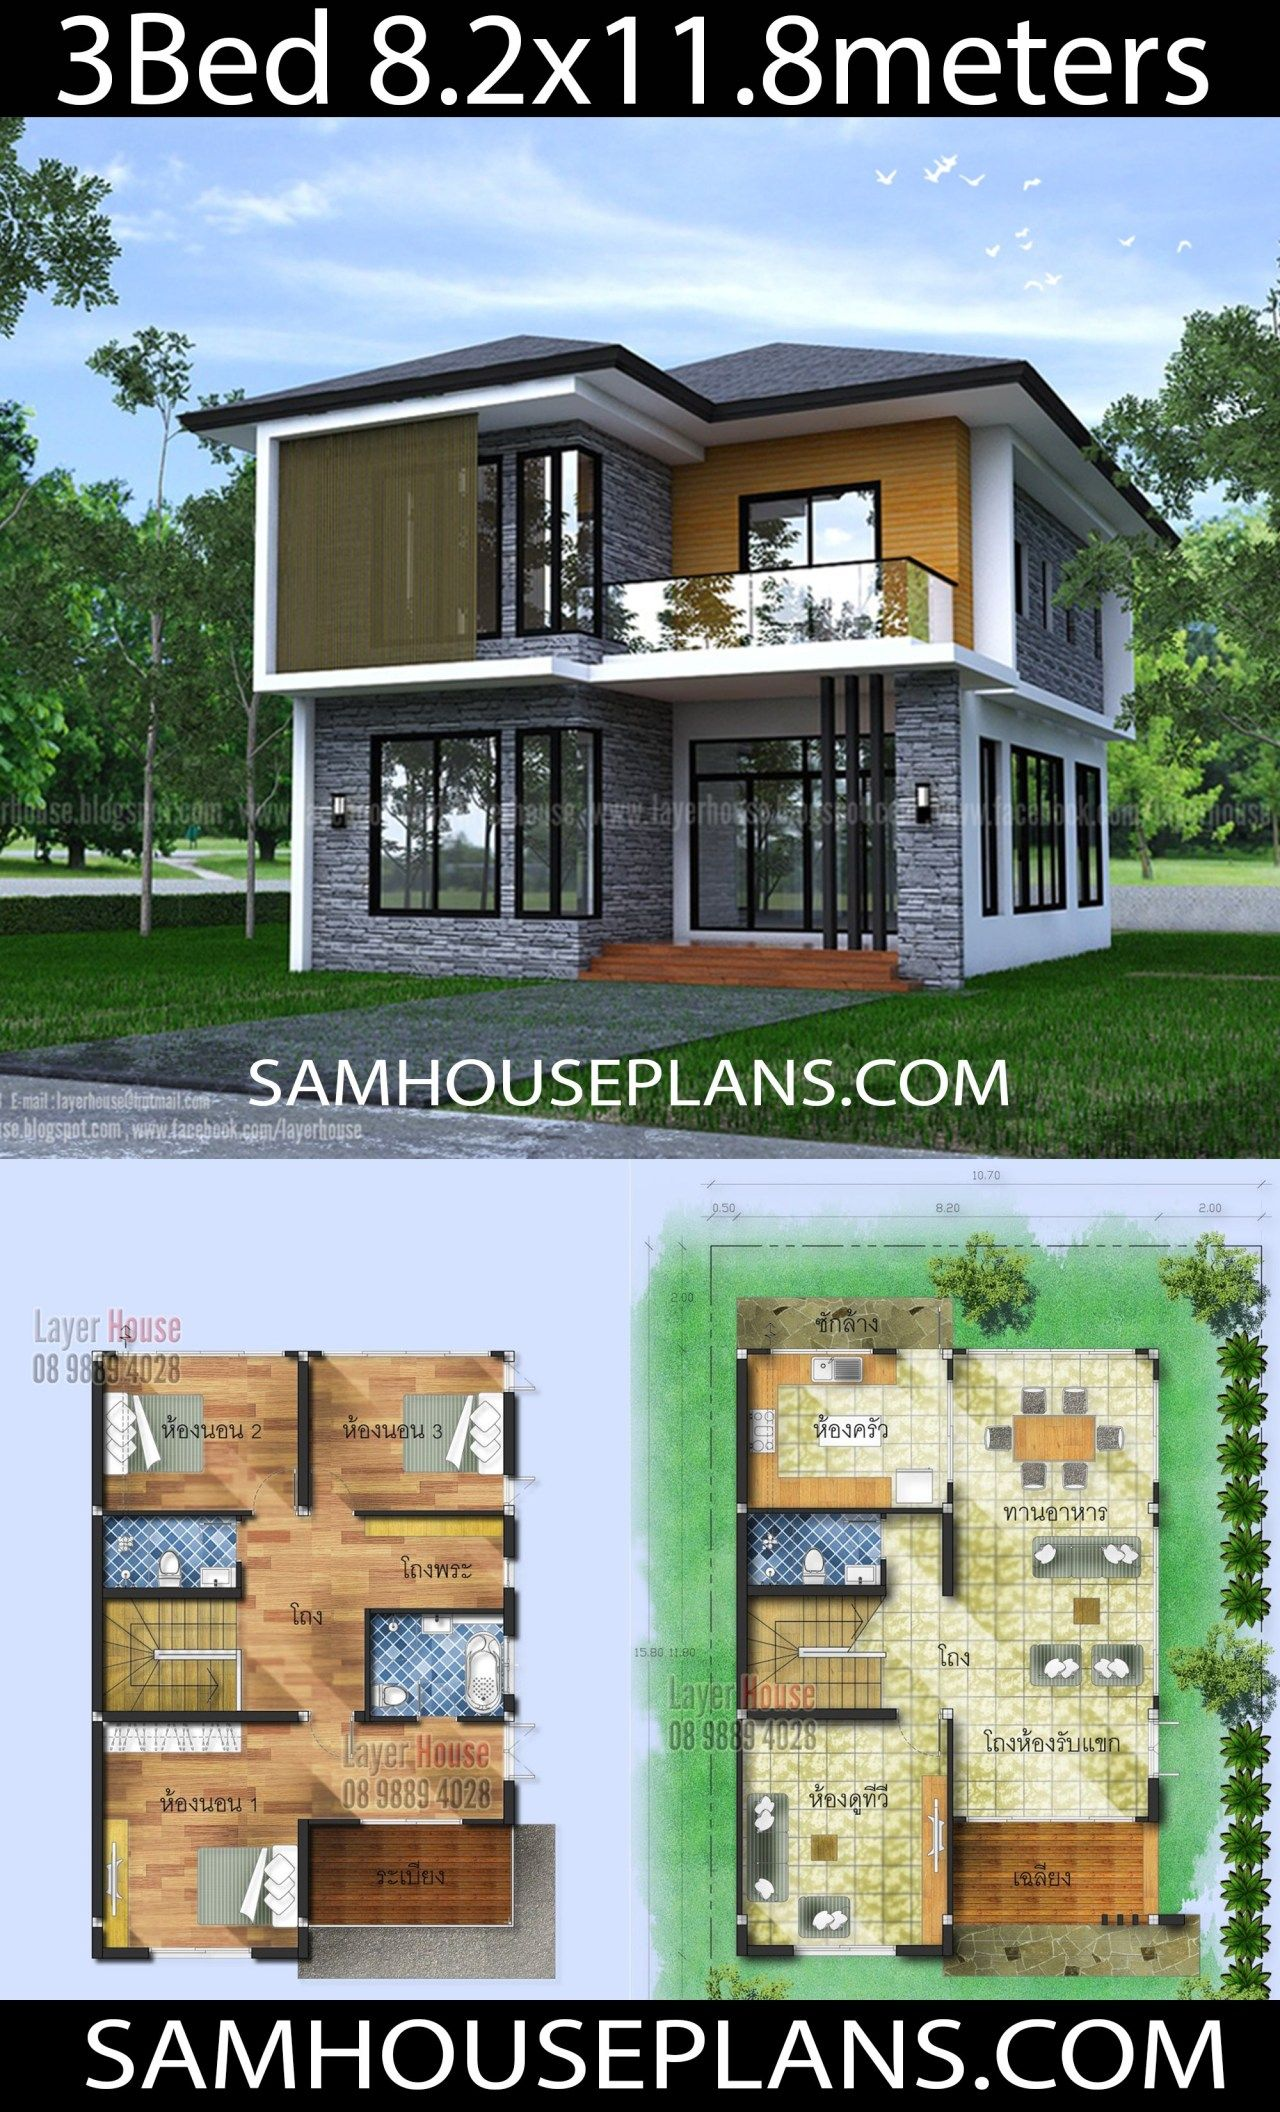 House Plans Idea 8 2x11 8m With 3 Bedrooms Sam House Plans House Plans House Architecture Design Prefabricated Houses